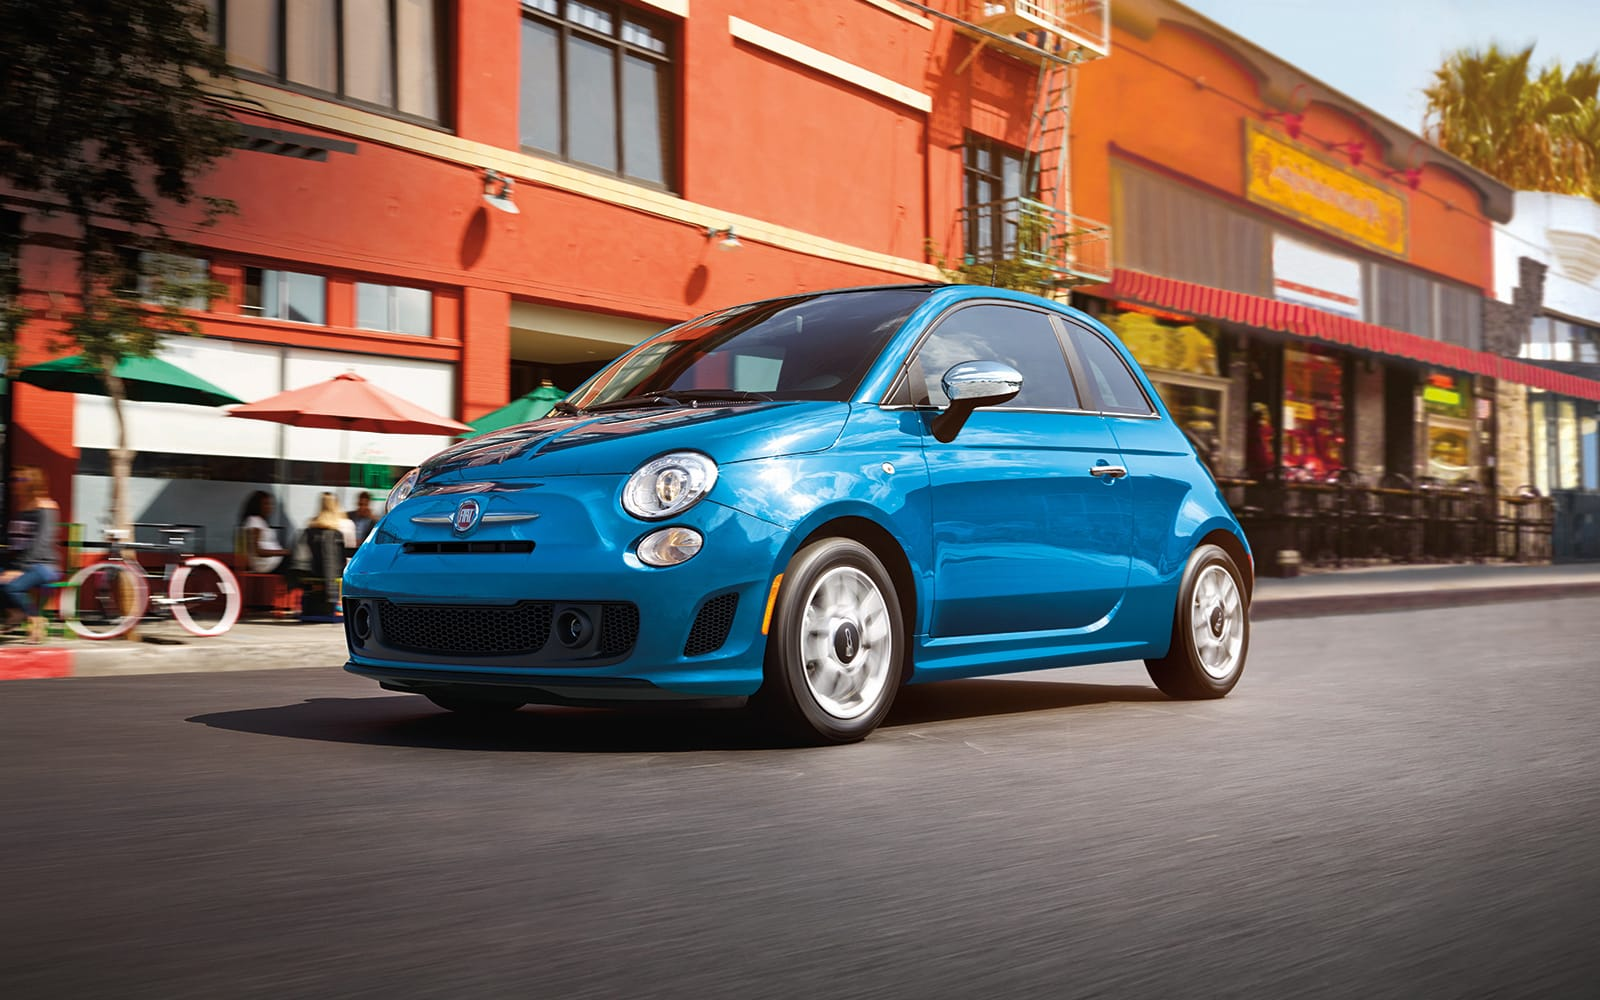 Fiat-500-2018-1.jpeg.pagespeed.ce.J6QMTpab8a